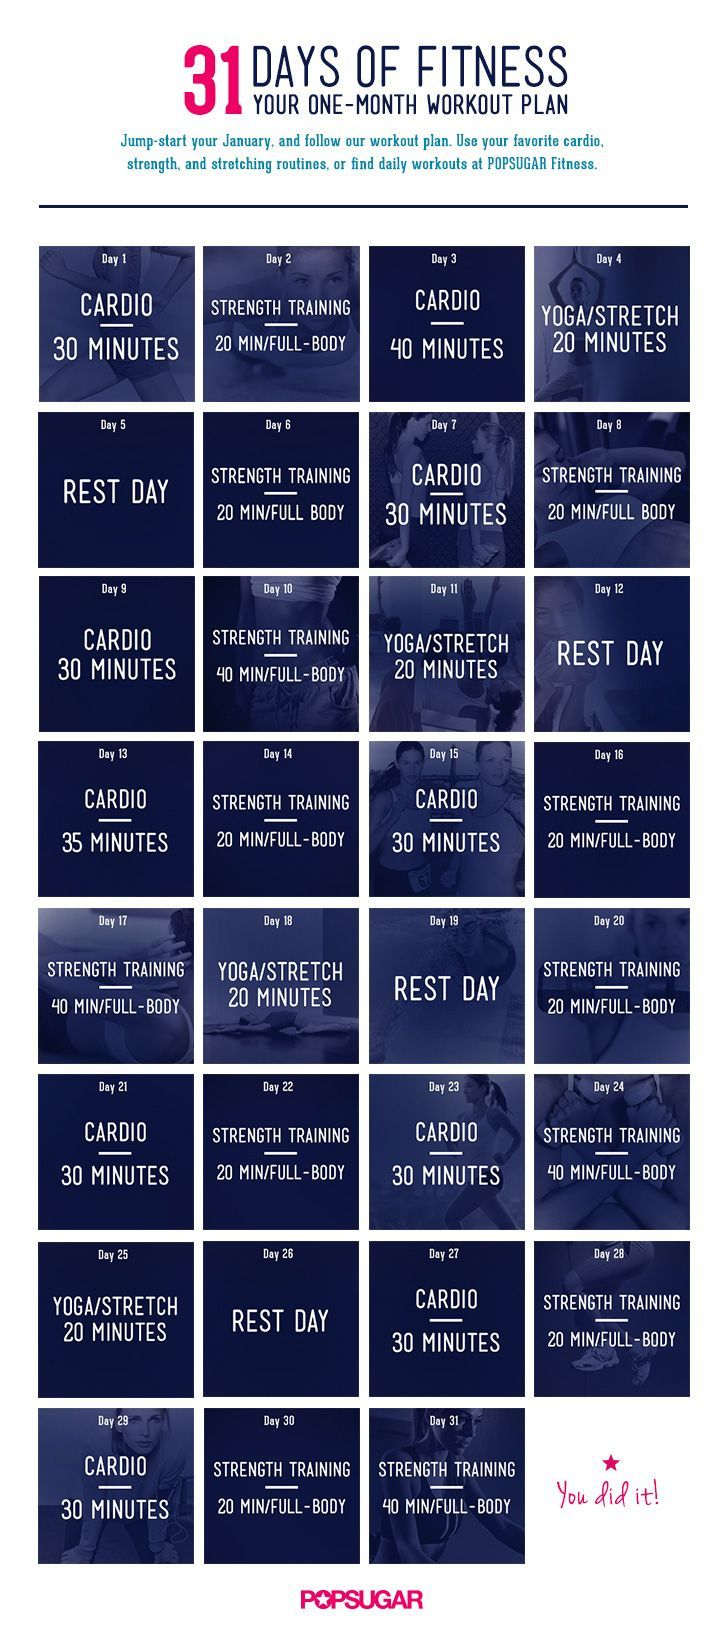 Here's a plan for entire month of workouts: cardio, strength, and flexibility training. -